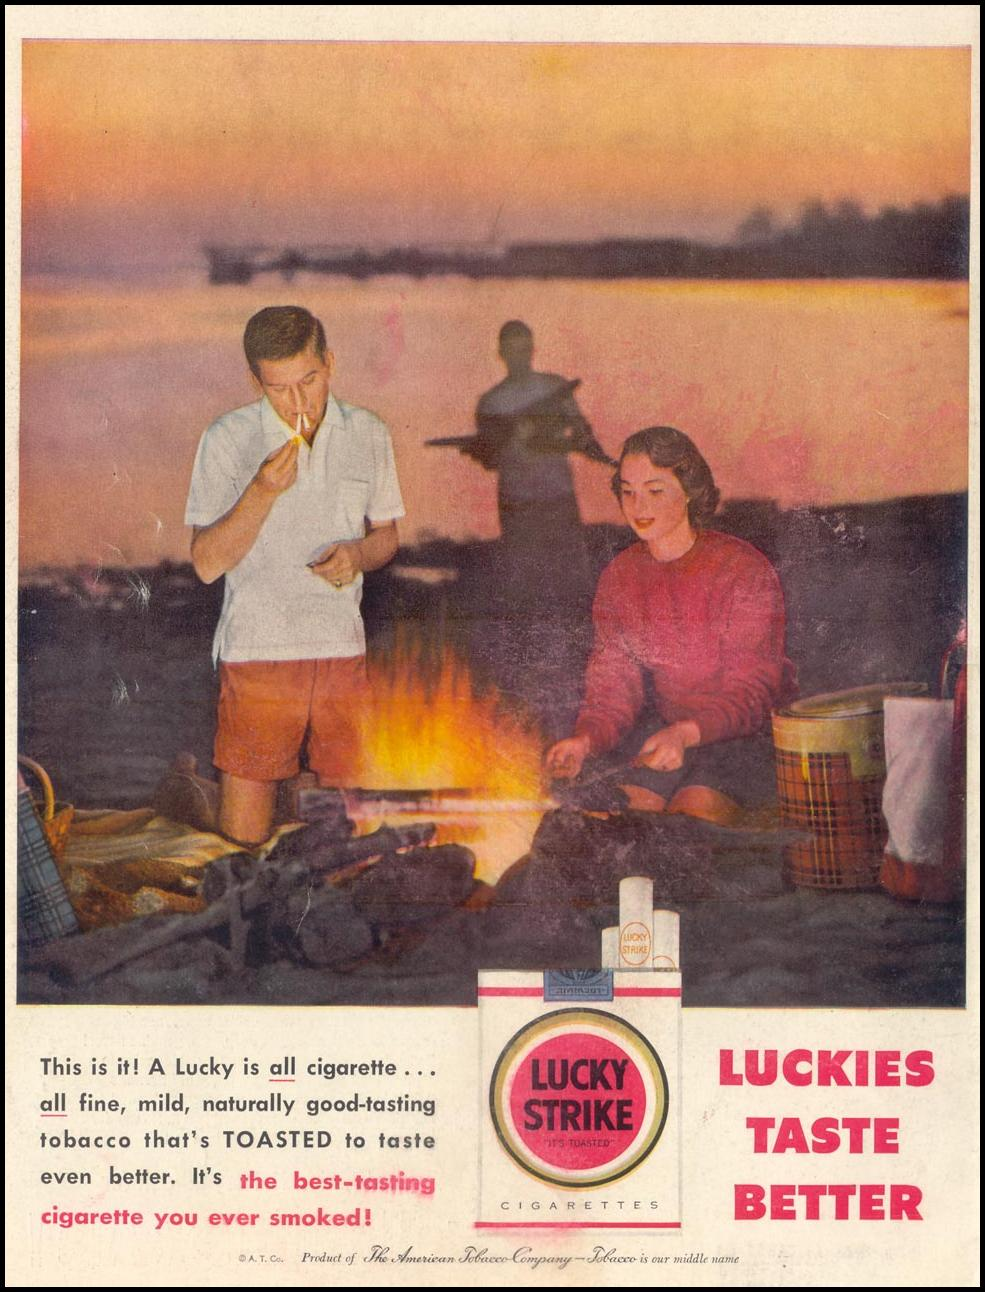 LUCKY STRIKE CIGARETTES LIFE 07/01/1957 BACK COVER